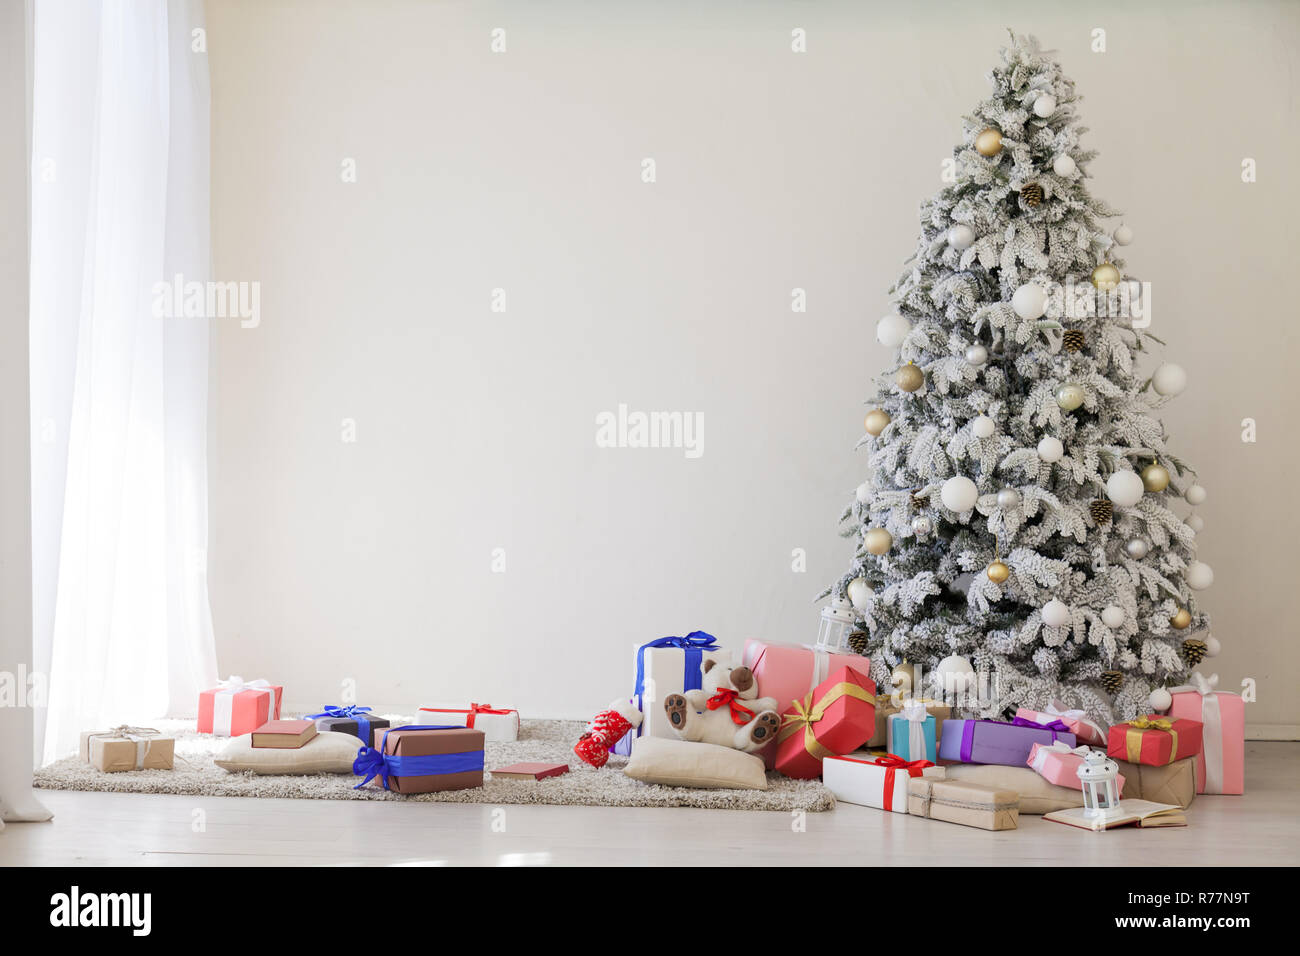 winter Christmas tree Garland lights new year holiday gifts white home decor - Stock Image